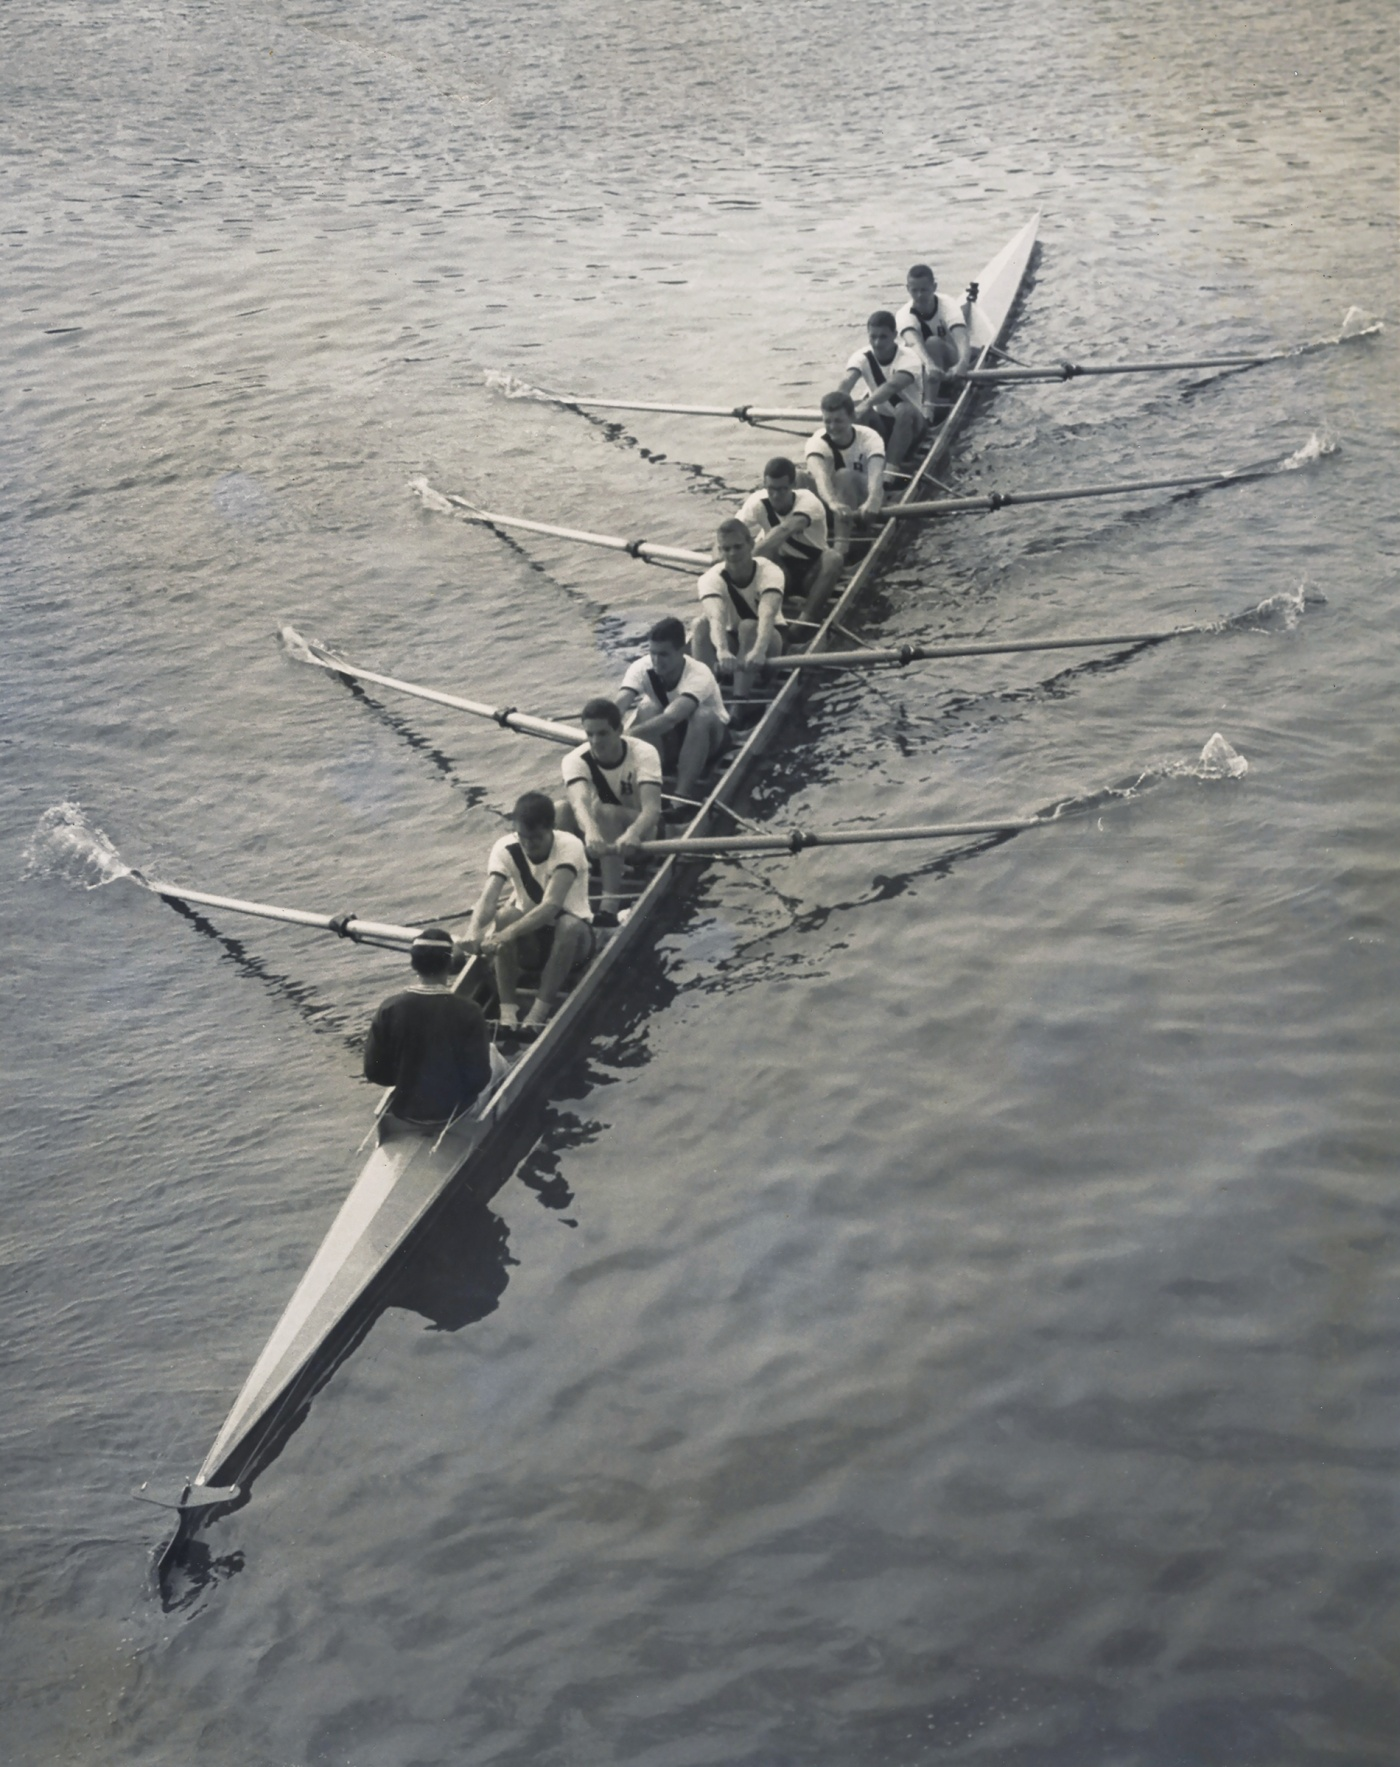 overhead shot of the varsity rowing team 1960